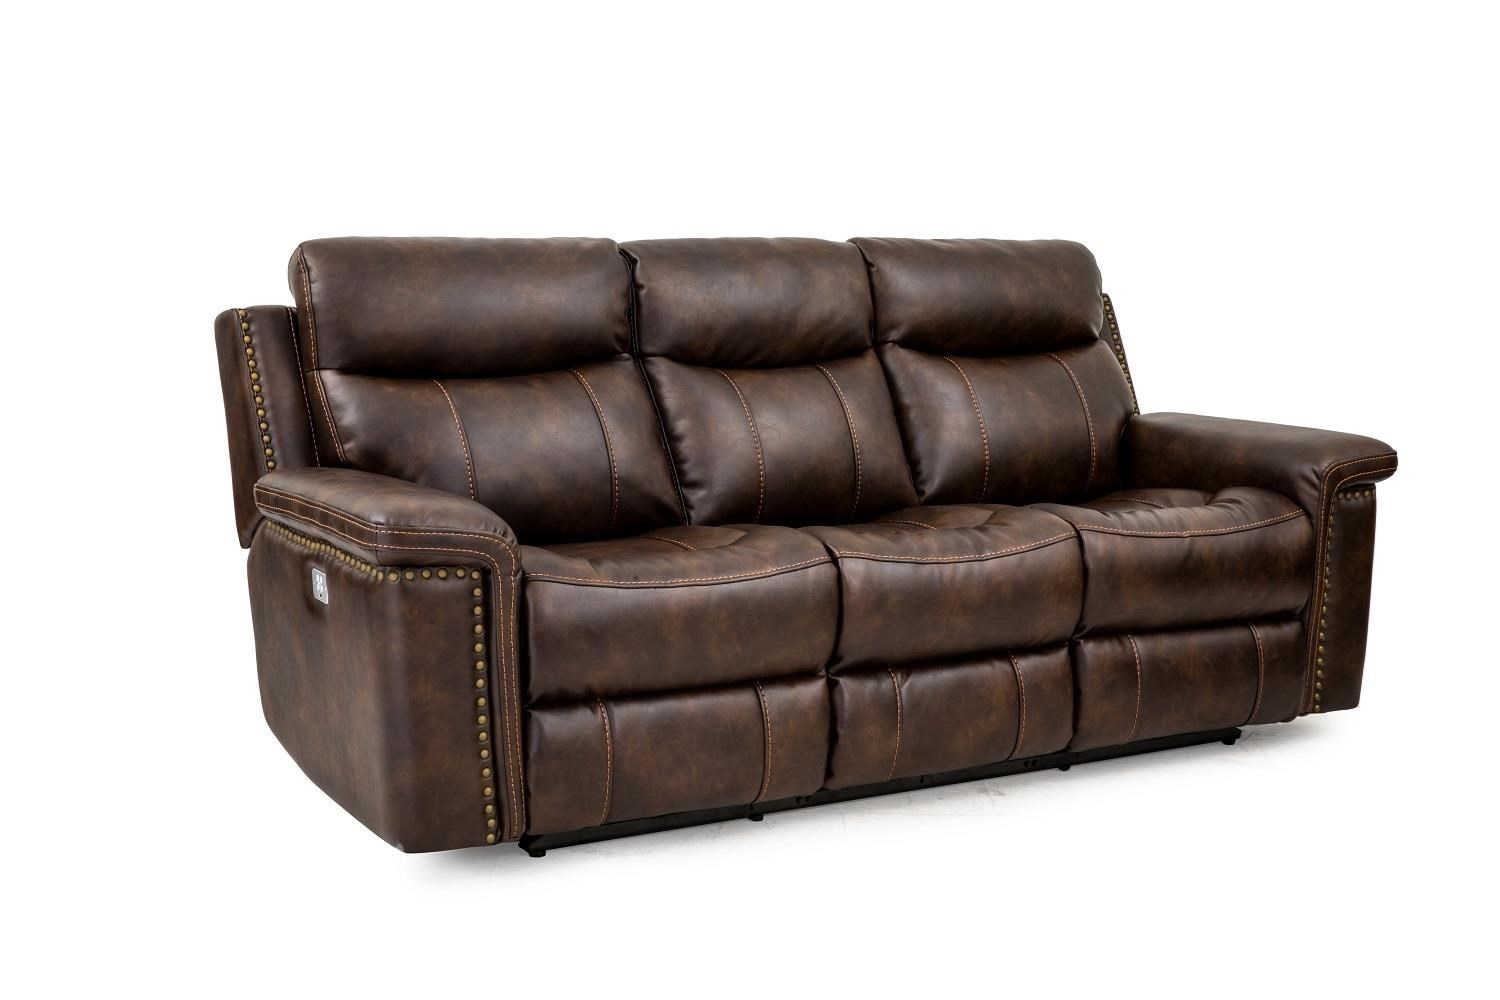 Cheers Sofa Phoenix Leather Power Reclining Sofa with Power Head u0026 Footrests - Great American Home Store - Reclining Sofas  sc 1 st  Great American Home Store & Cheers Sofa Phoenix Leather Power Reclining Sofa with Power Head ... islam-shia.org